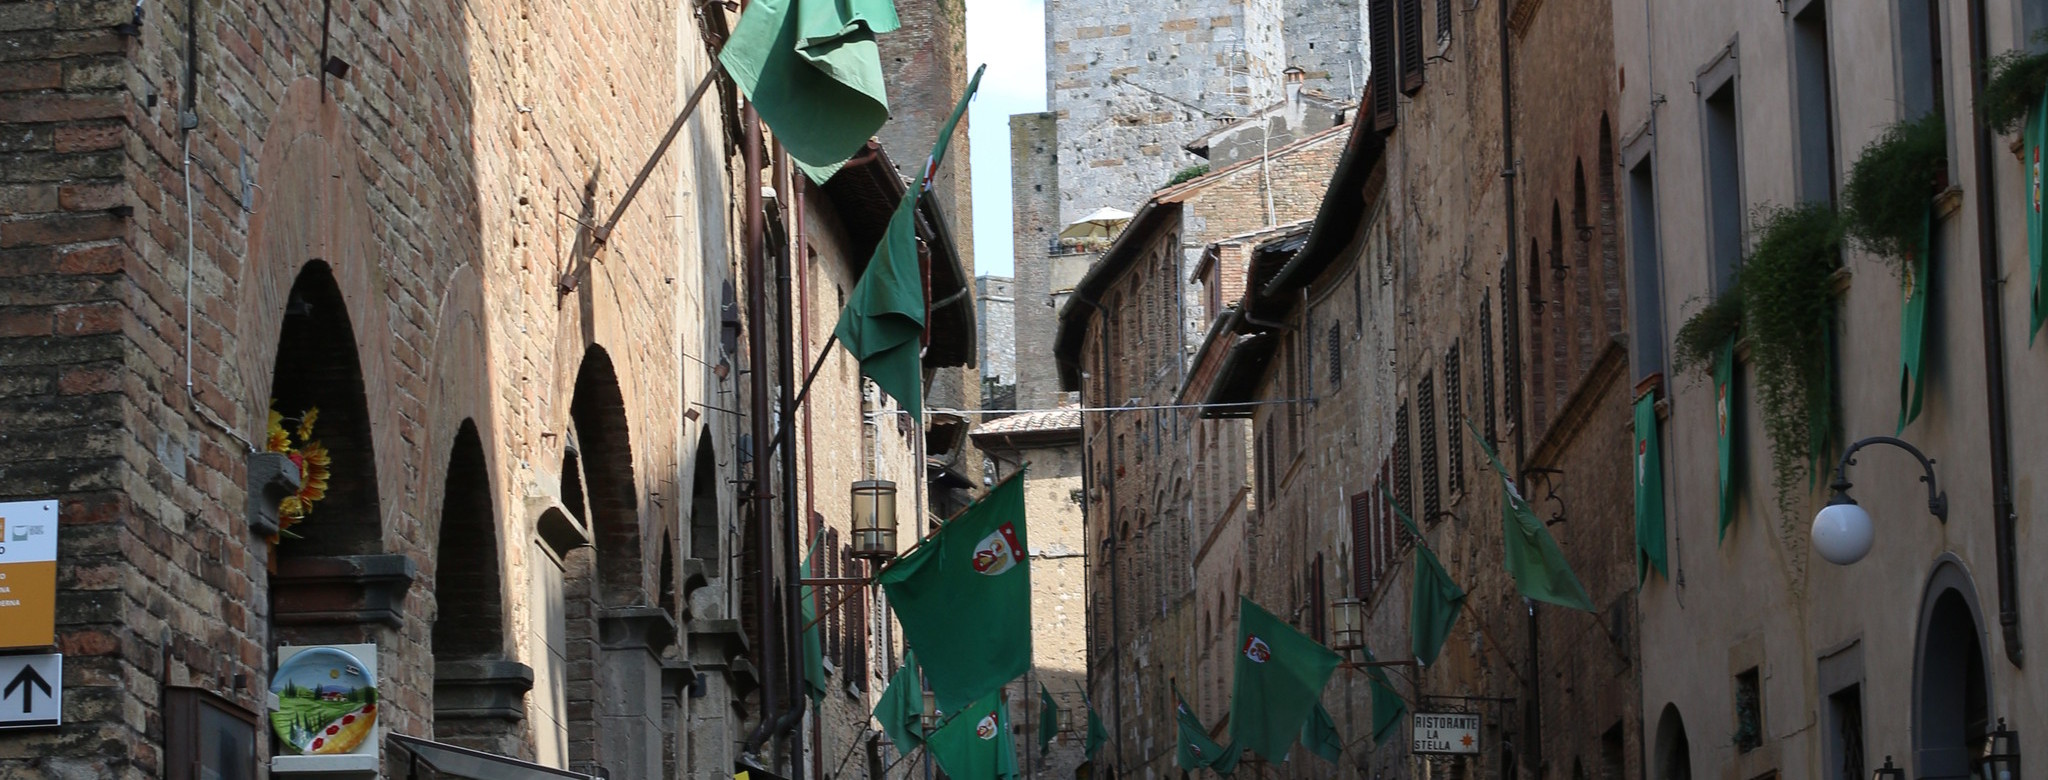 Alleyways in San Gimignano.